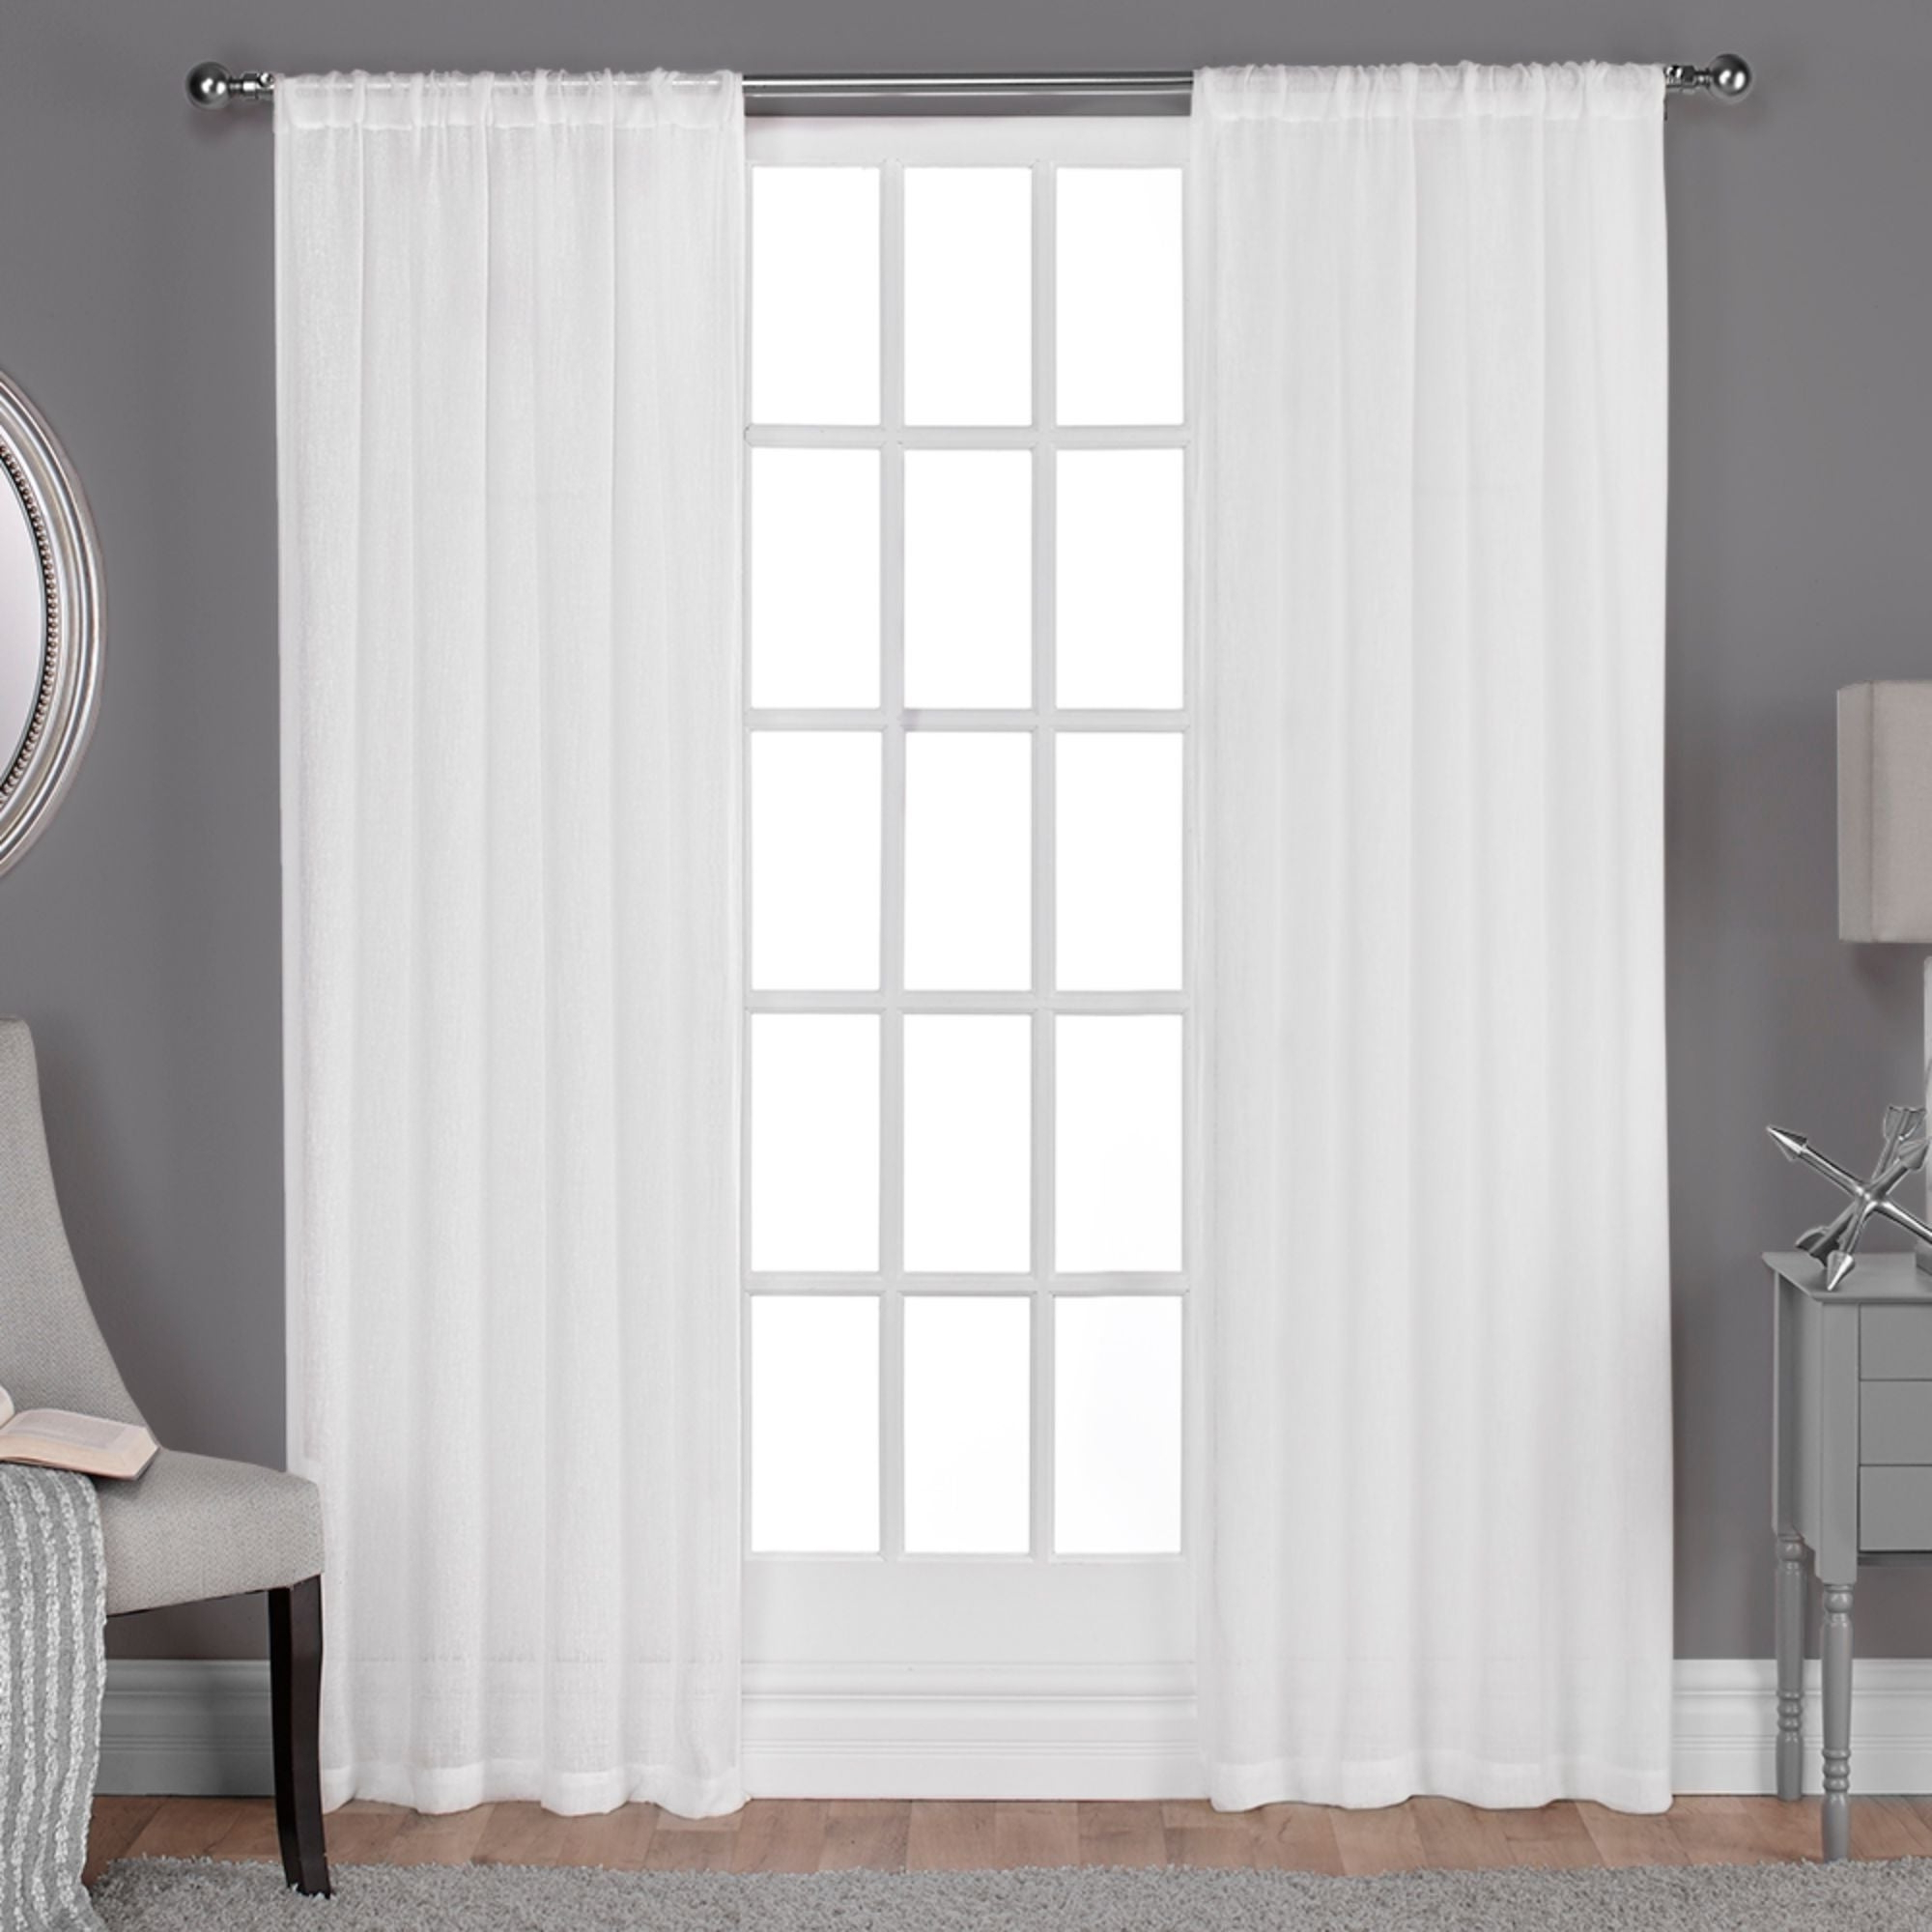 Well Liked Ati Home Belgian Sheer Window Curtain Panel Pair With Rod Pocket In Belgian Sheer Window Curtain Panel Pairs With Rod Pocket (View 4 of 20)